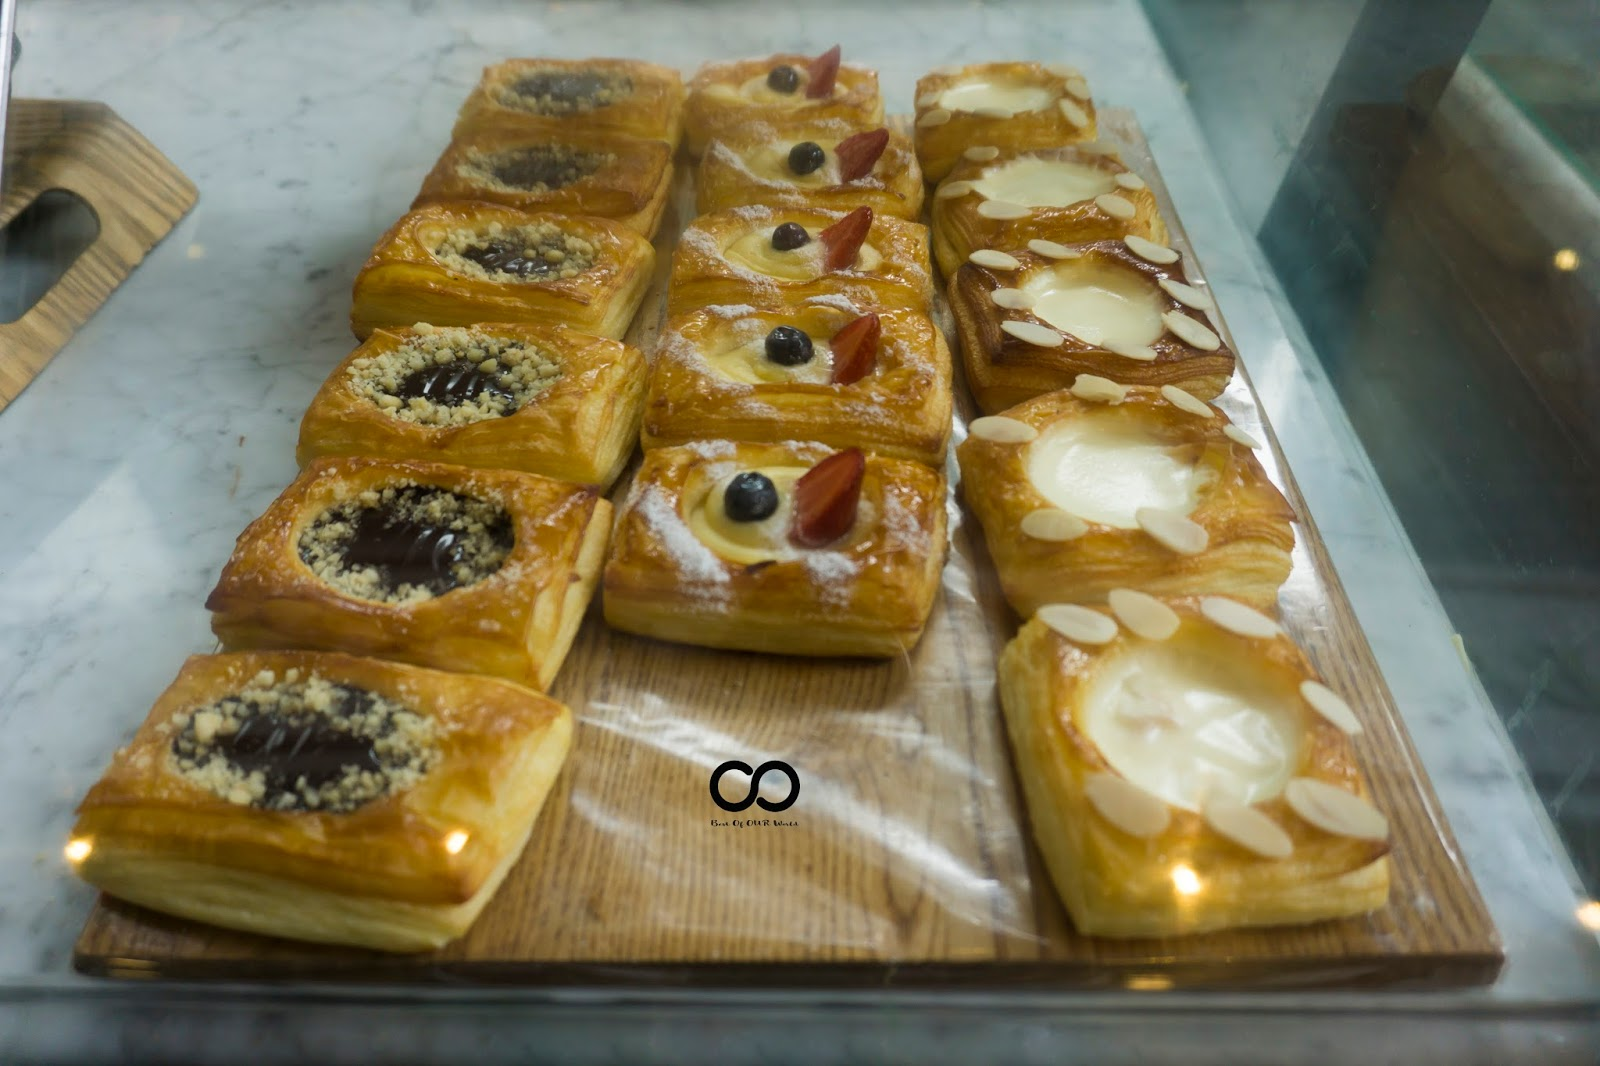 breads, pastries, and cakes